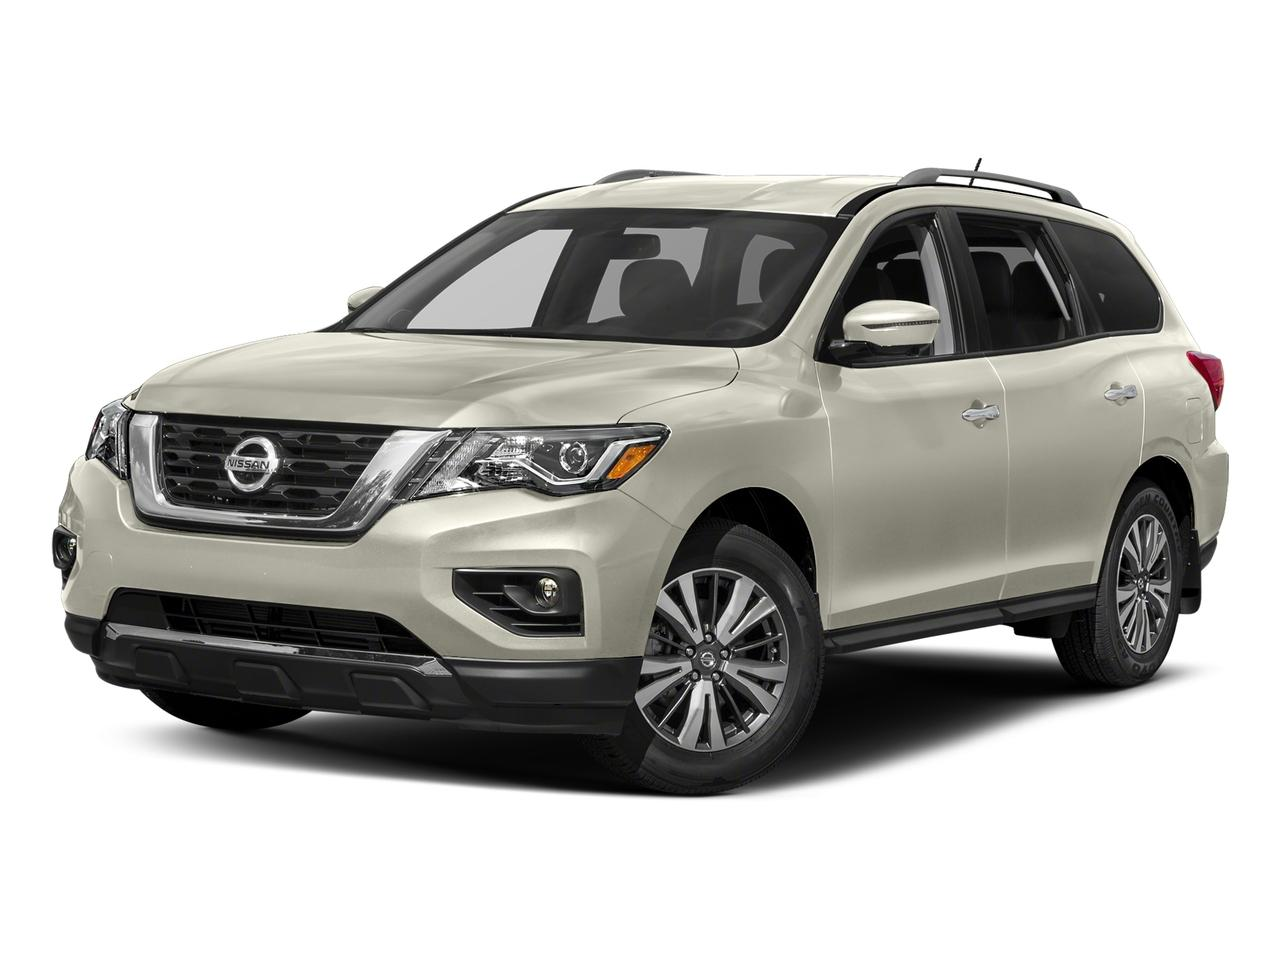 2018 Nissan Pathfinder Vehicle Photo in Safford, AZ 85546